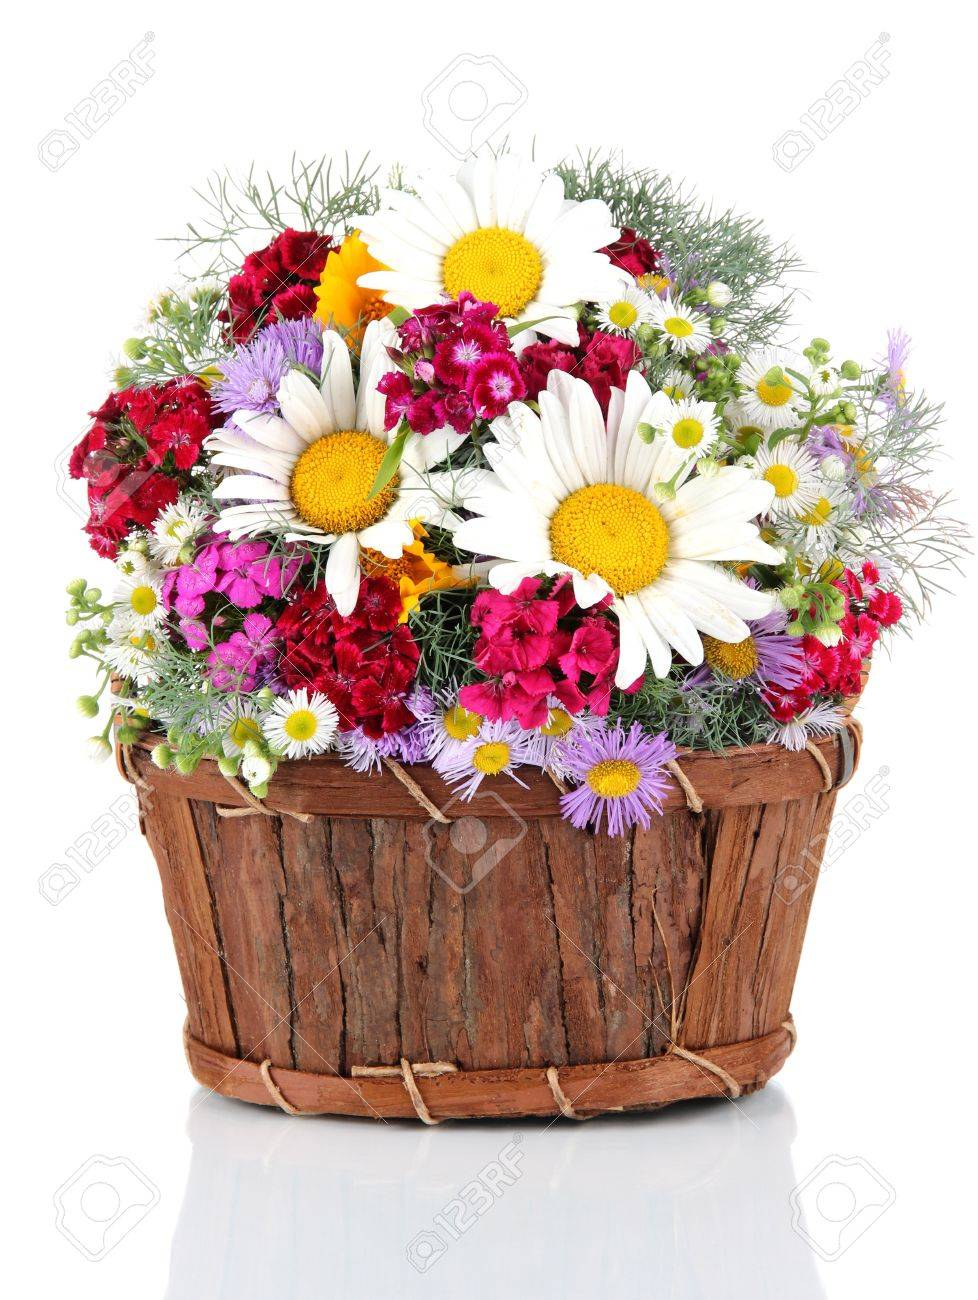 Beautiful Bright Flowers In Wooden Basket Isolated On White Stock